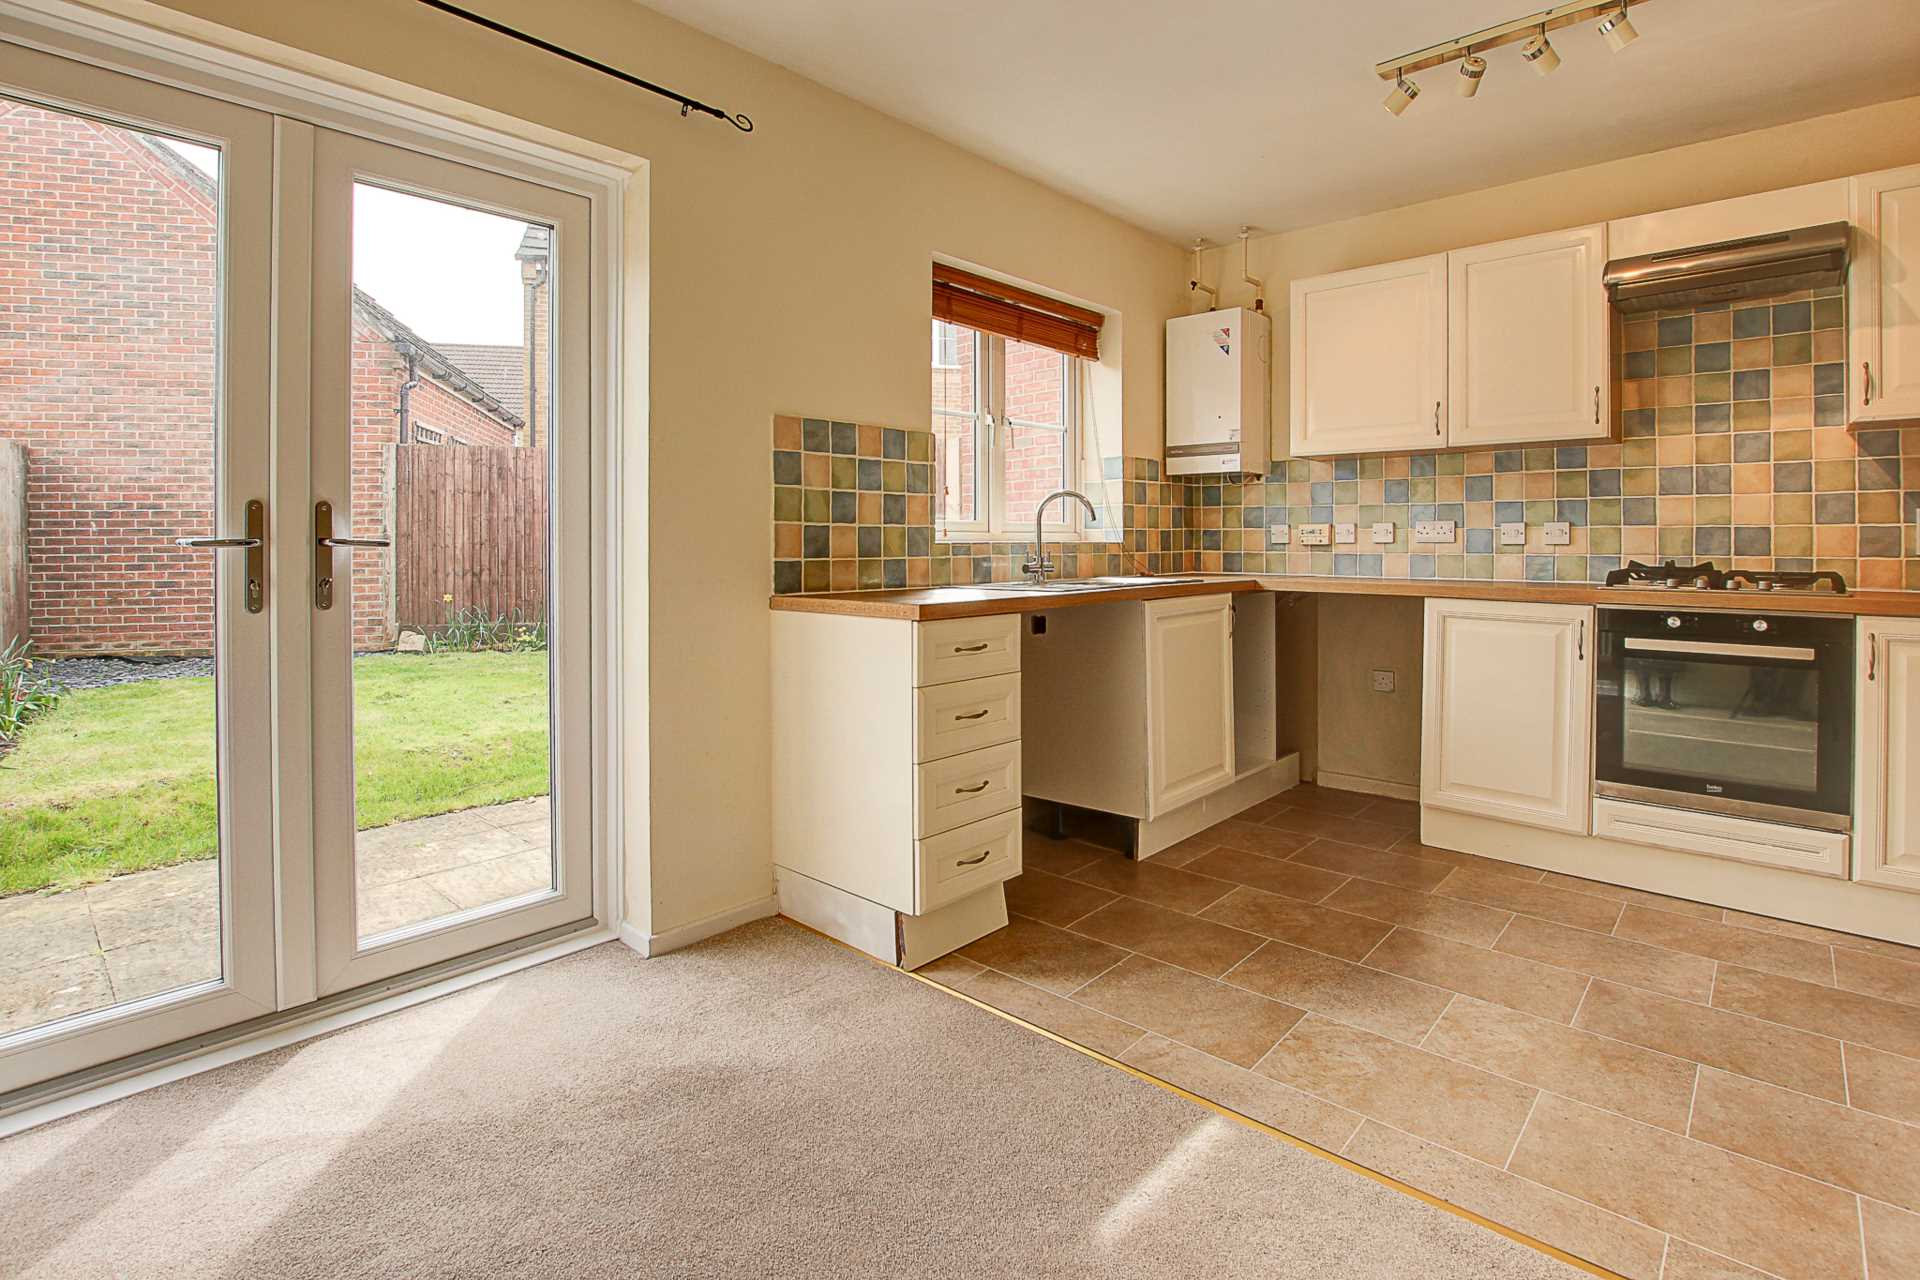 3 bed end of terrace house to rent in Chivrick Close, Sturminster Newton 2